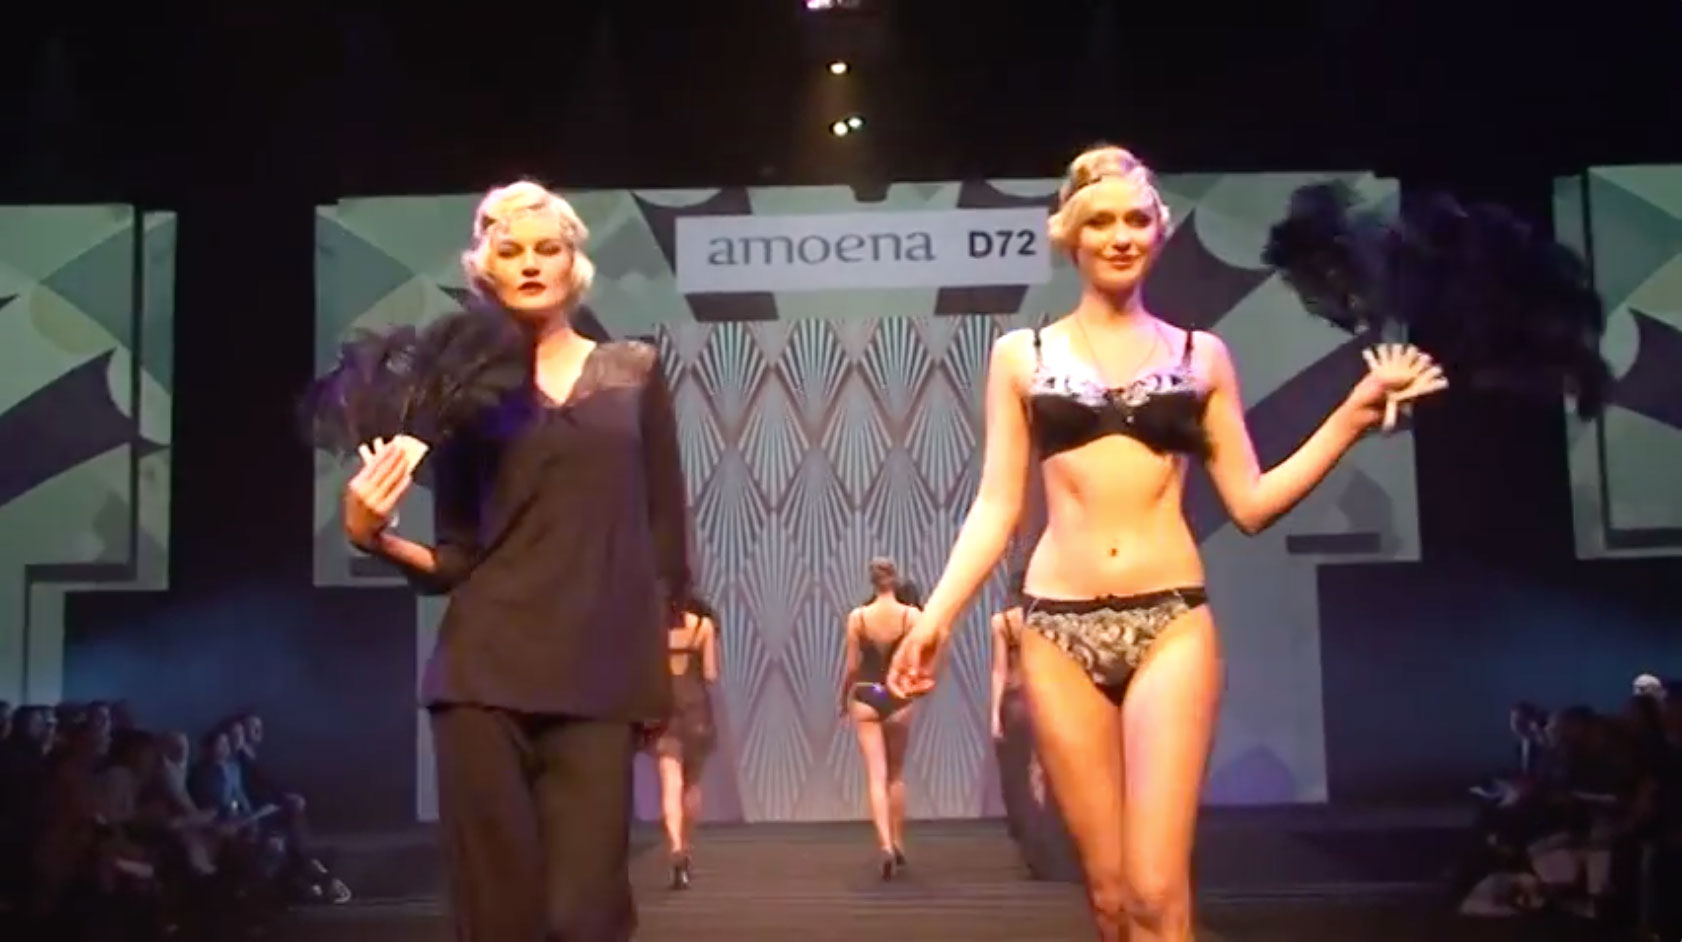 Salon De Lingerie Amoena At Salon International De La Lingerie Paris 2015 Runway